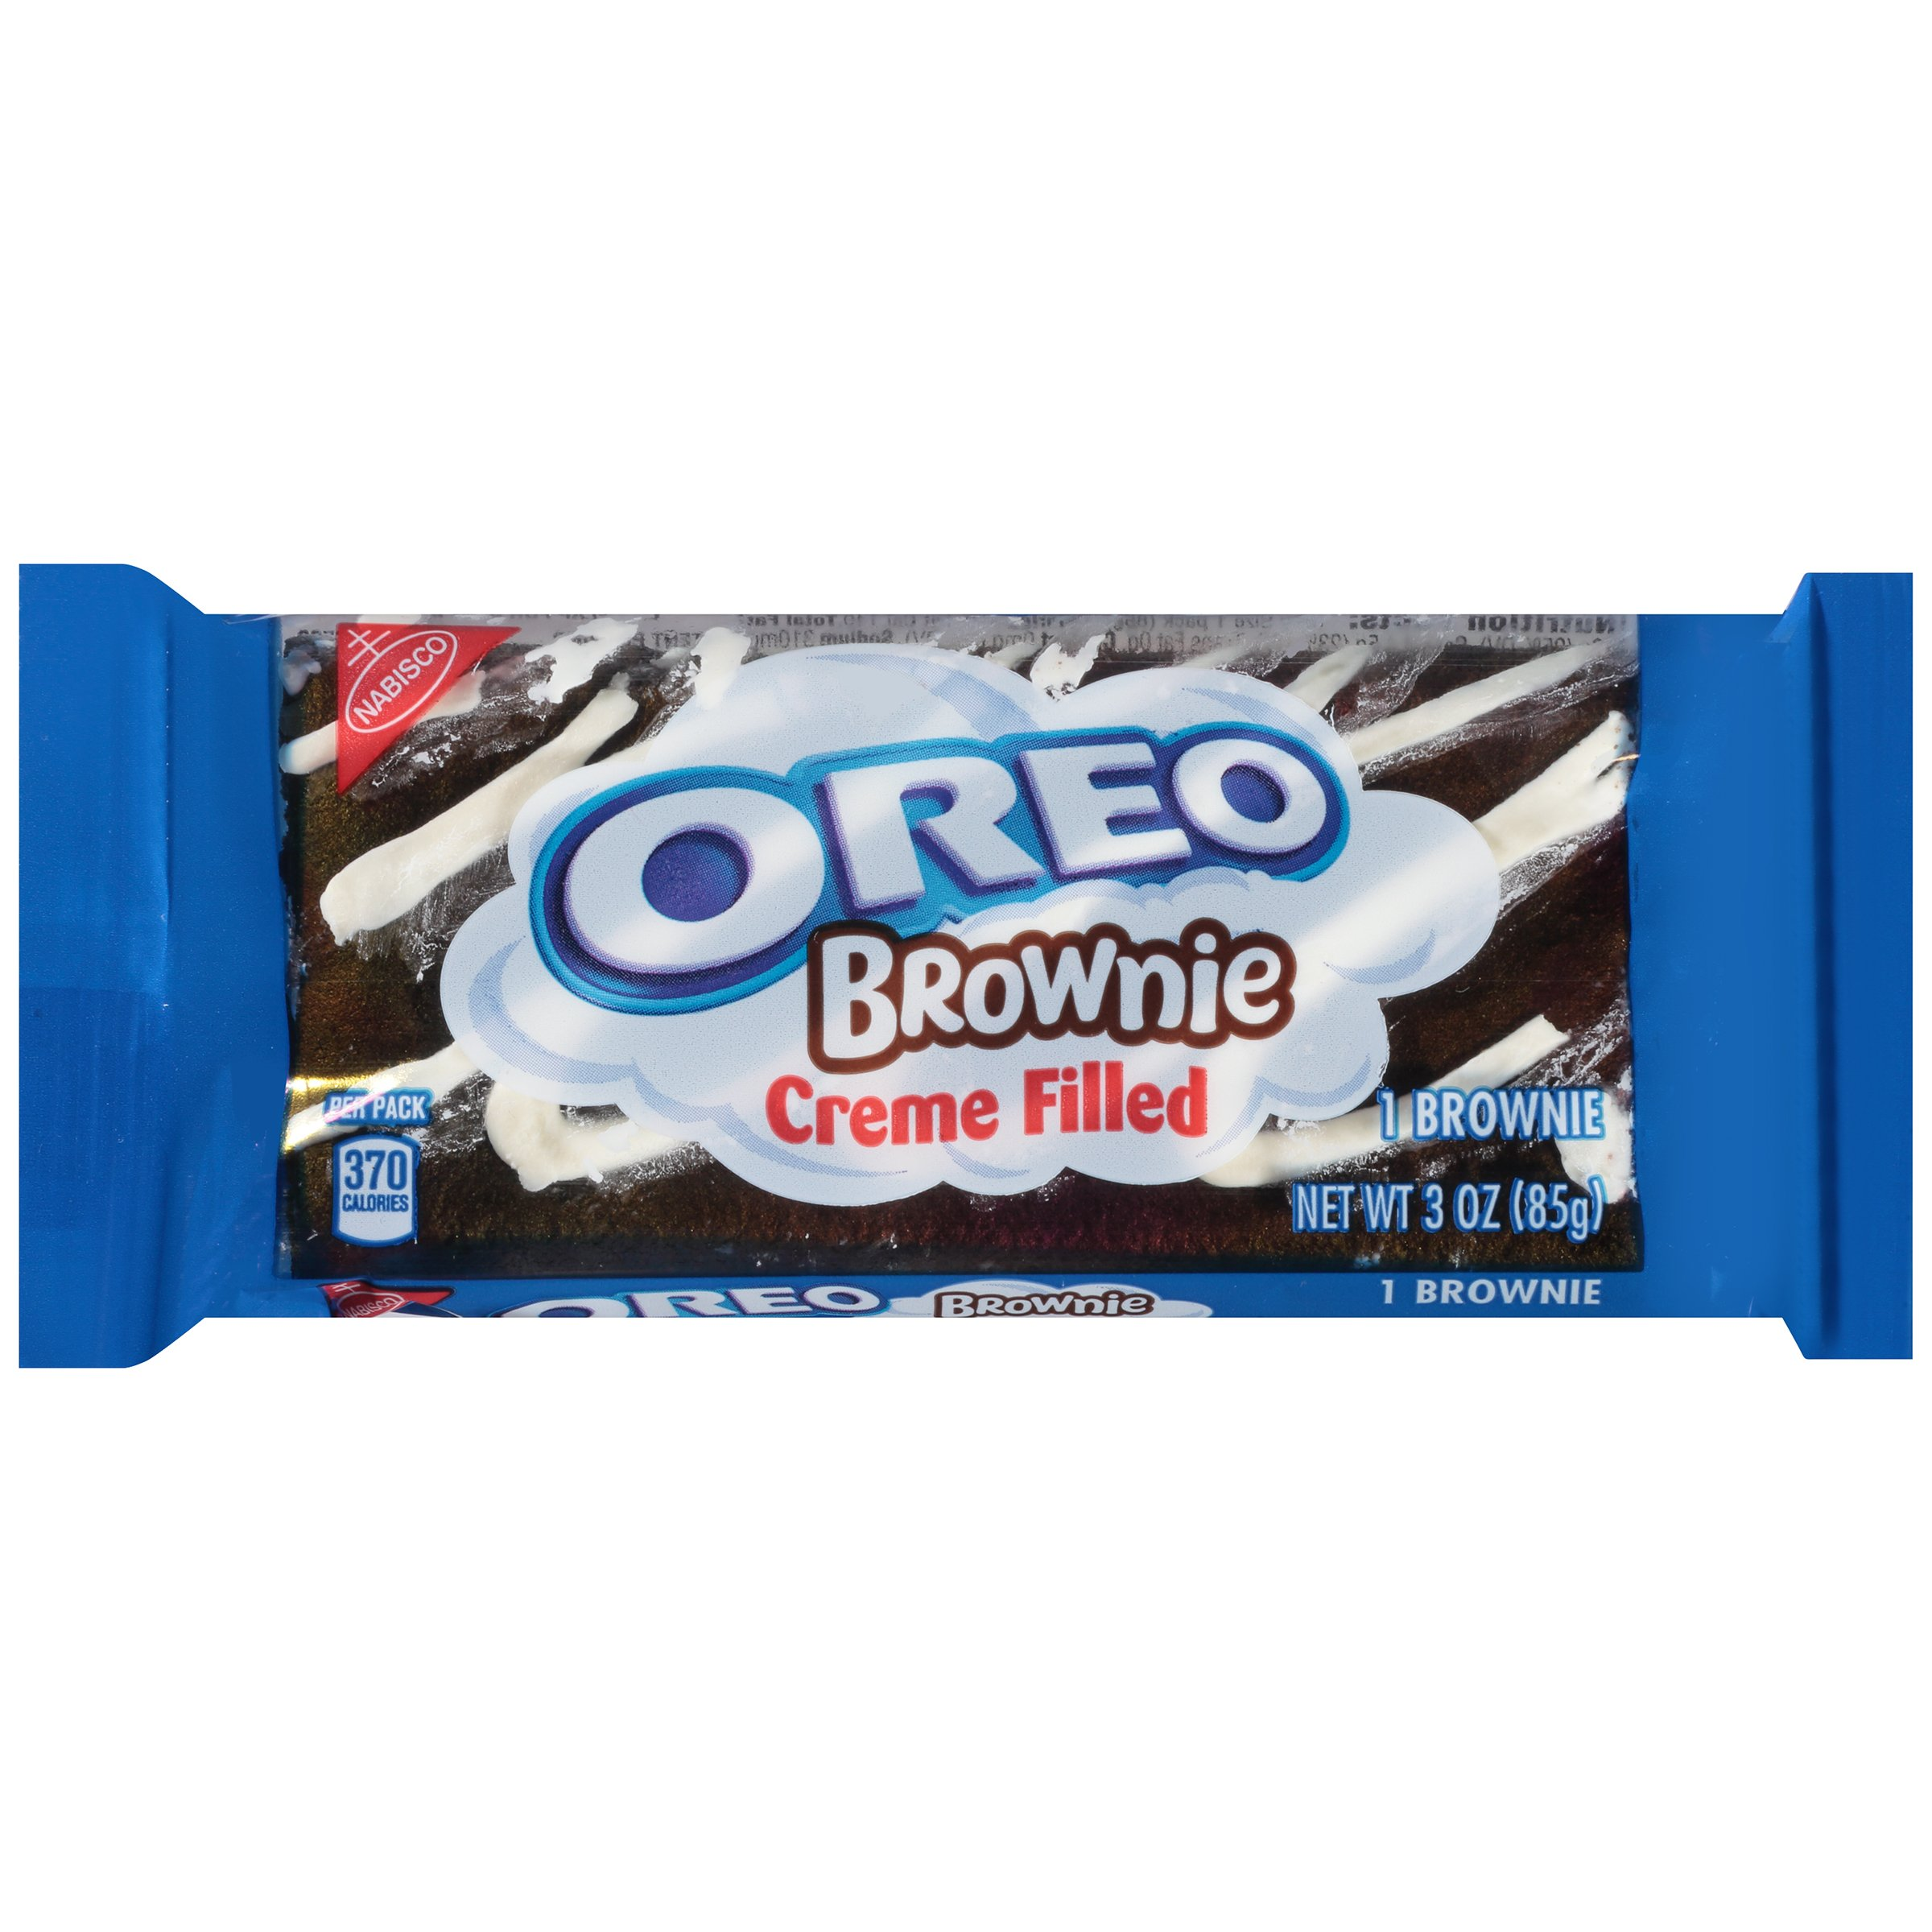 Oreo Brownie, Crème Filled, 3 Ounce Package, 12 Pack by Oreo